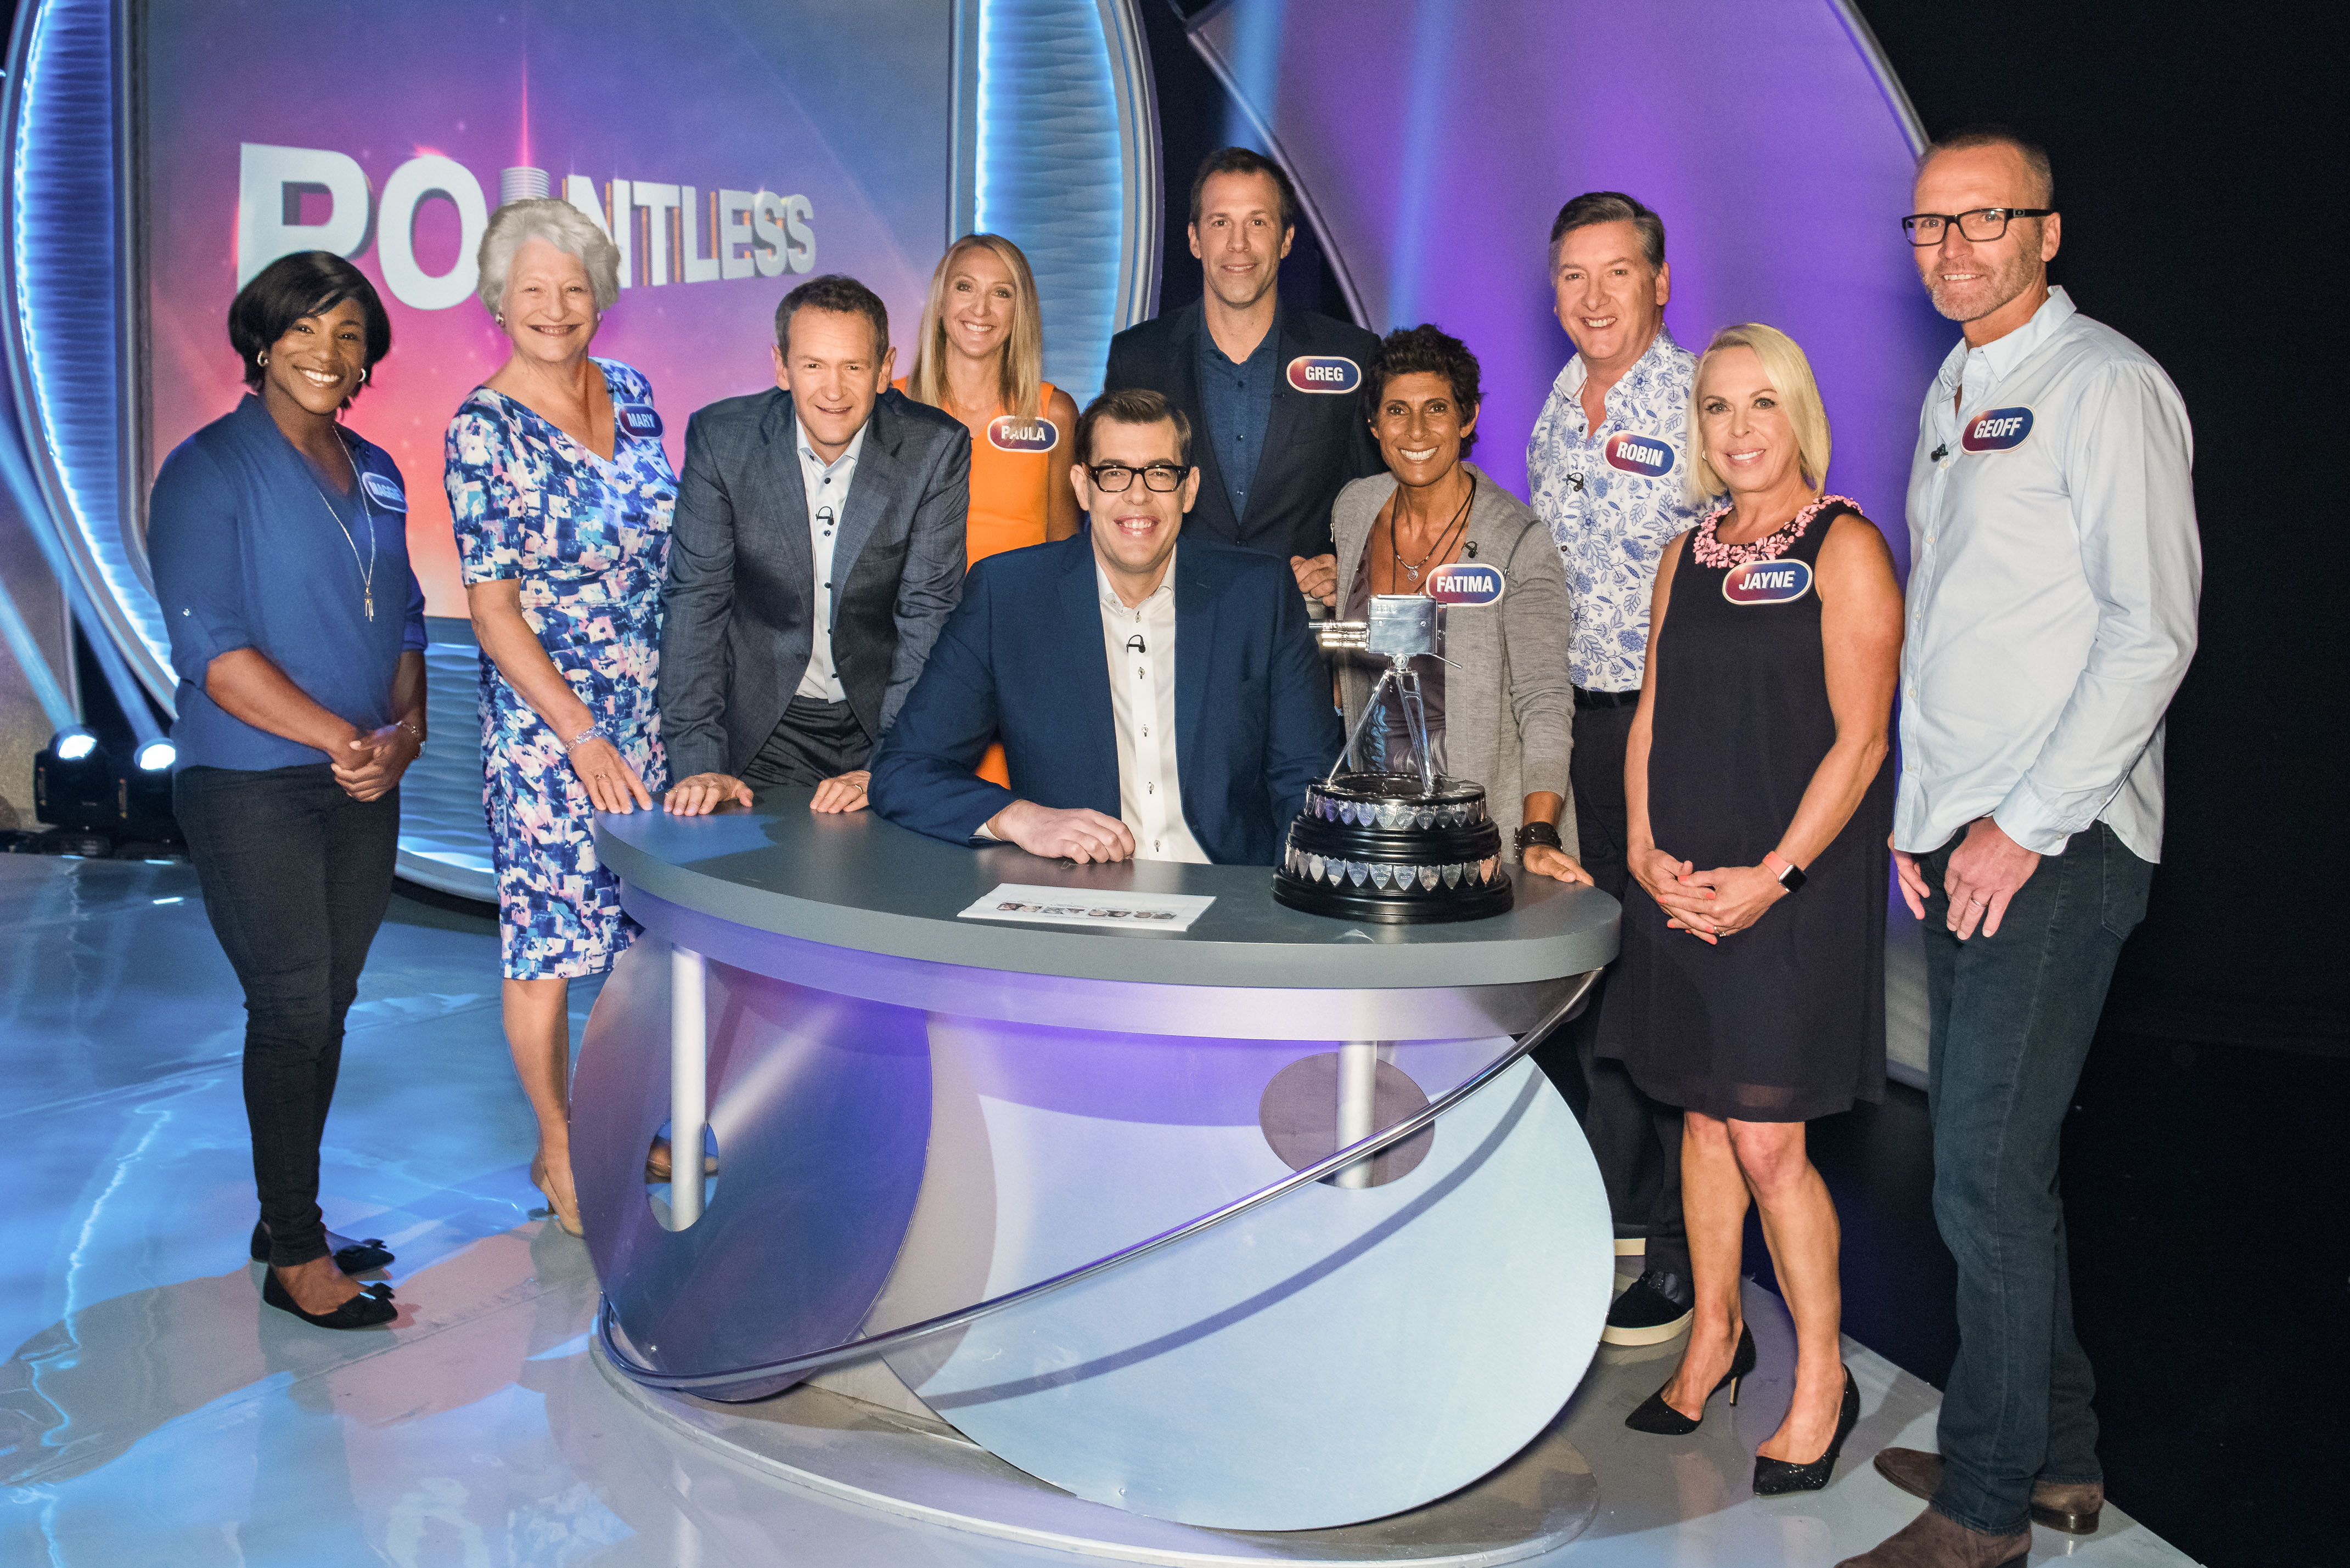 Pointless celebrity special